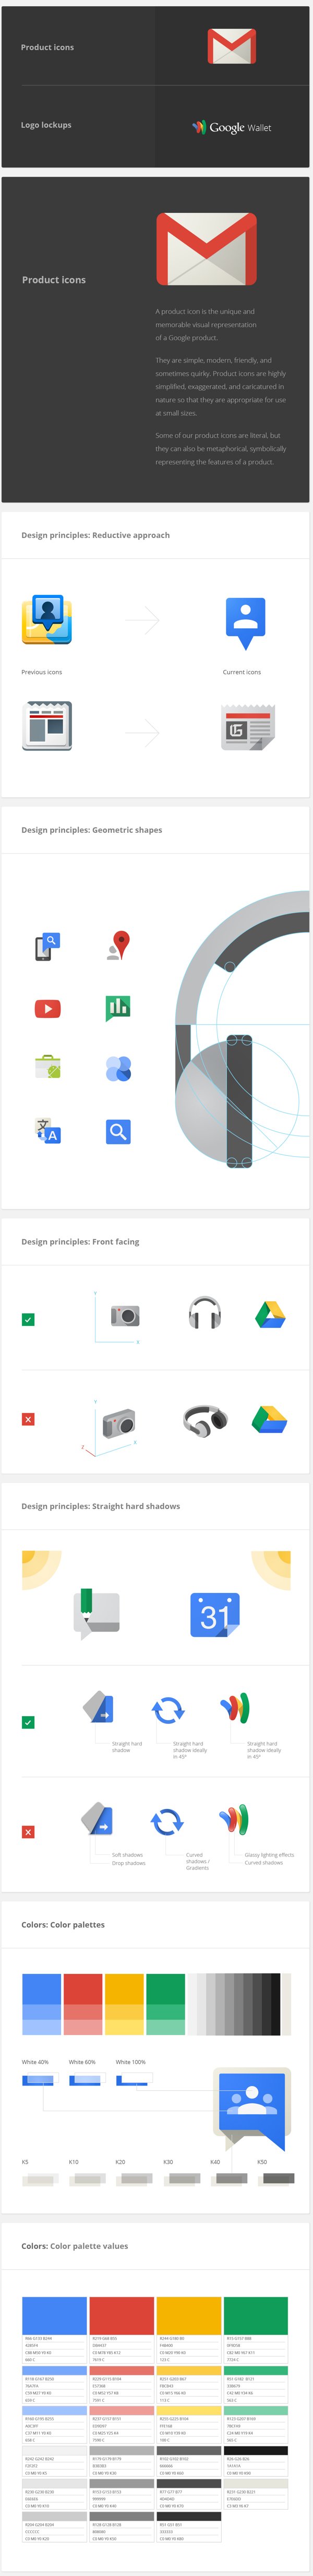 guias de elementos visuales de Google 1